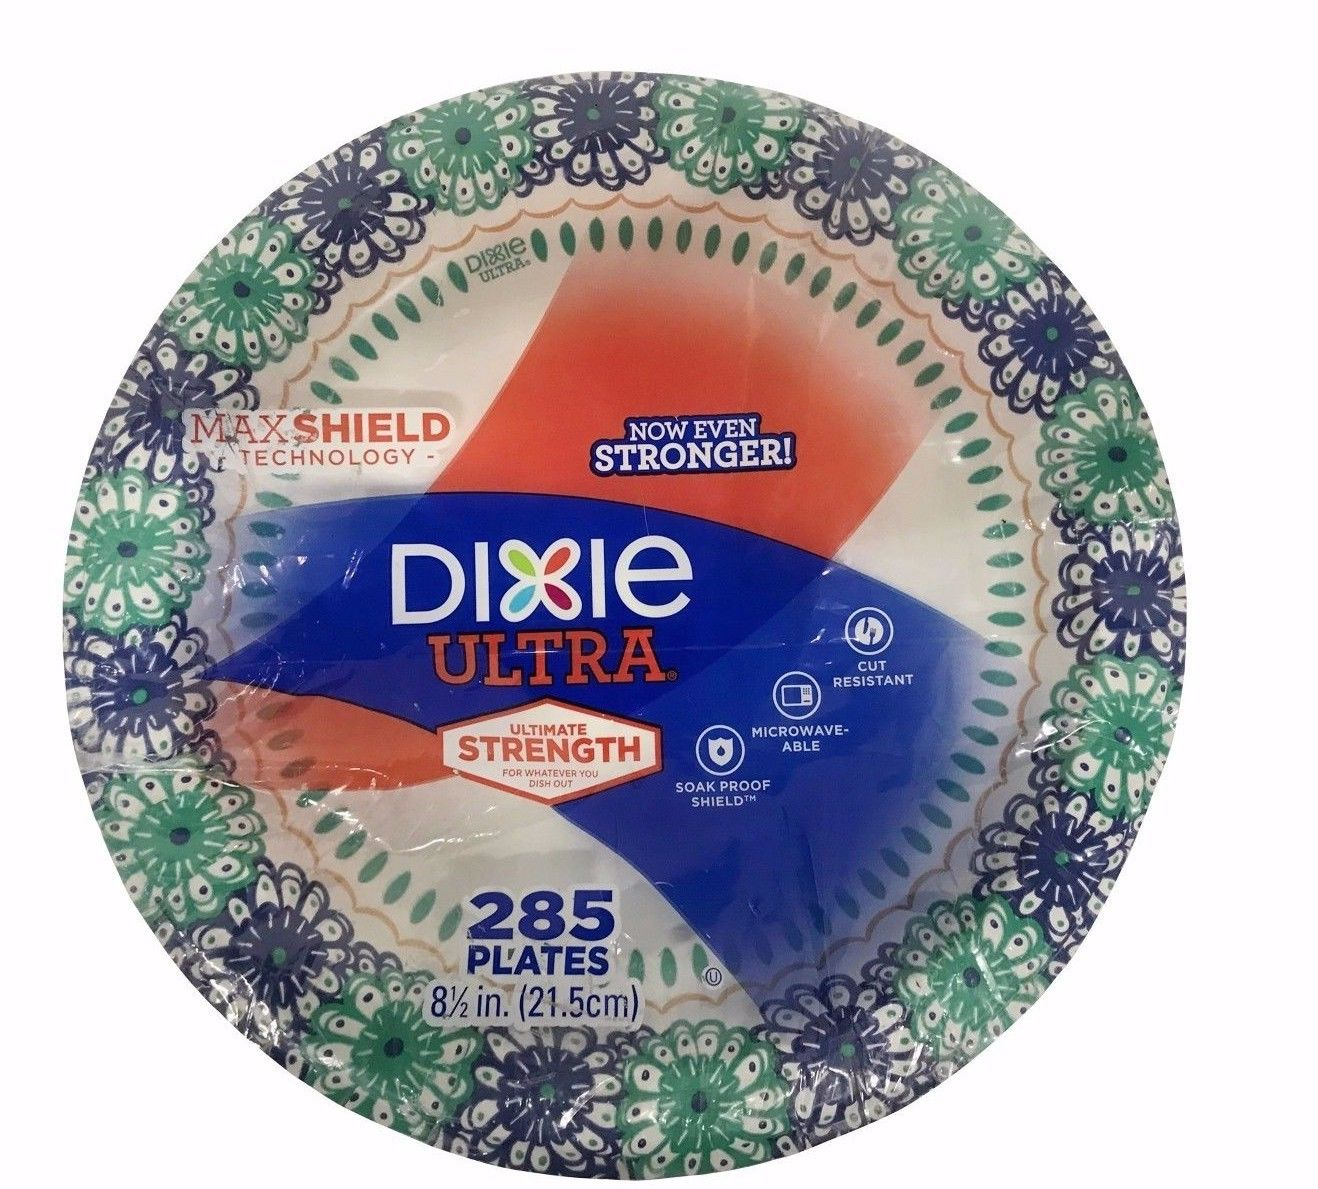 Dixie Ultra 8.5 Inch Max Shield Paper Plates Strong u0026 Cut-Resistant 285 Ct  sc 1 st  Gainmart Premium & Dixie Ultra 8.5 Inch Max Shield Paper Plates Strong u0026 Cut-Resistant ...